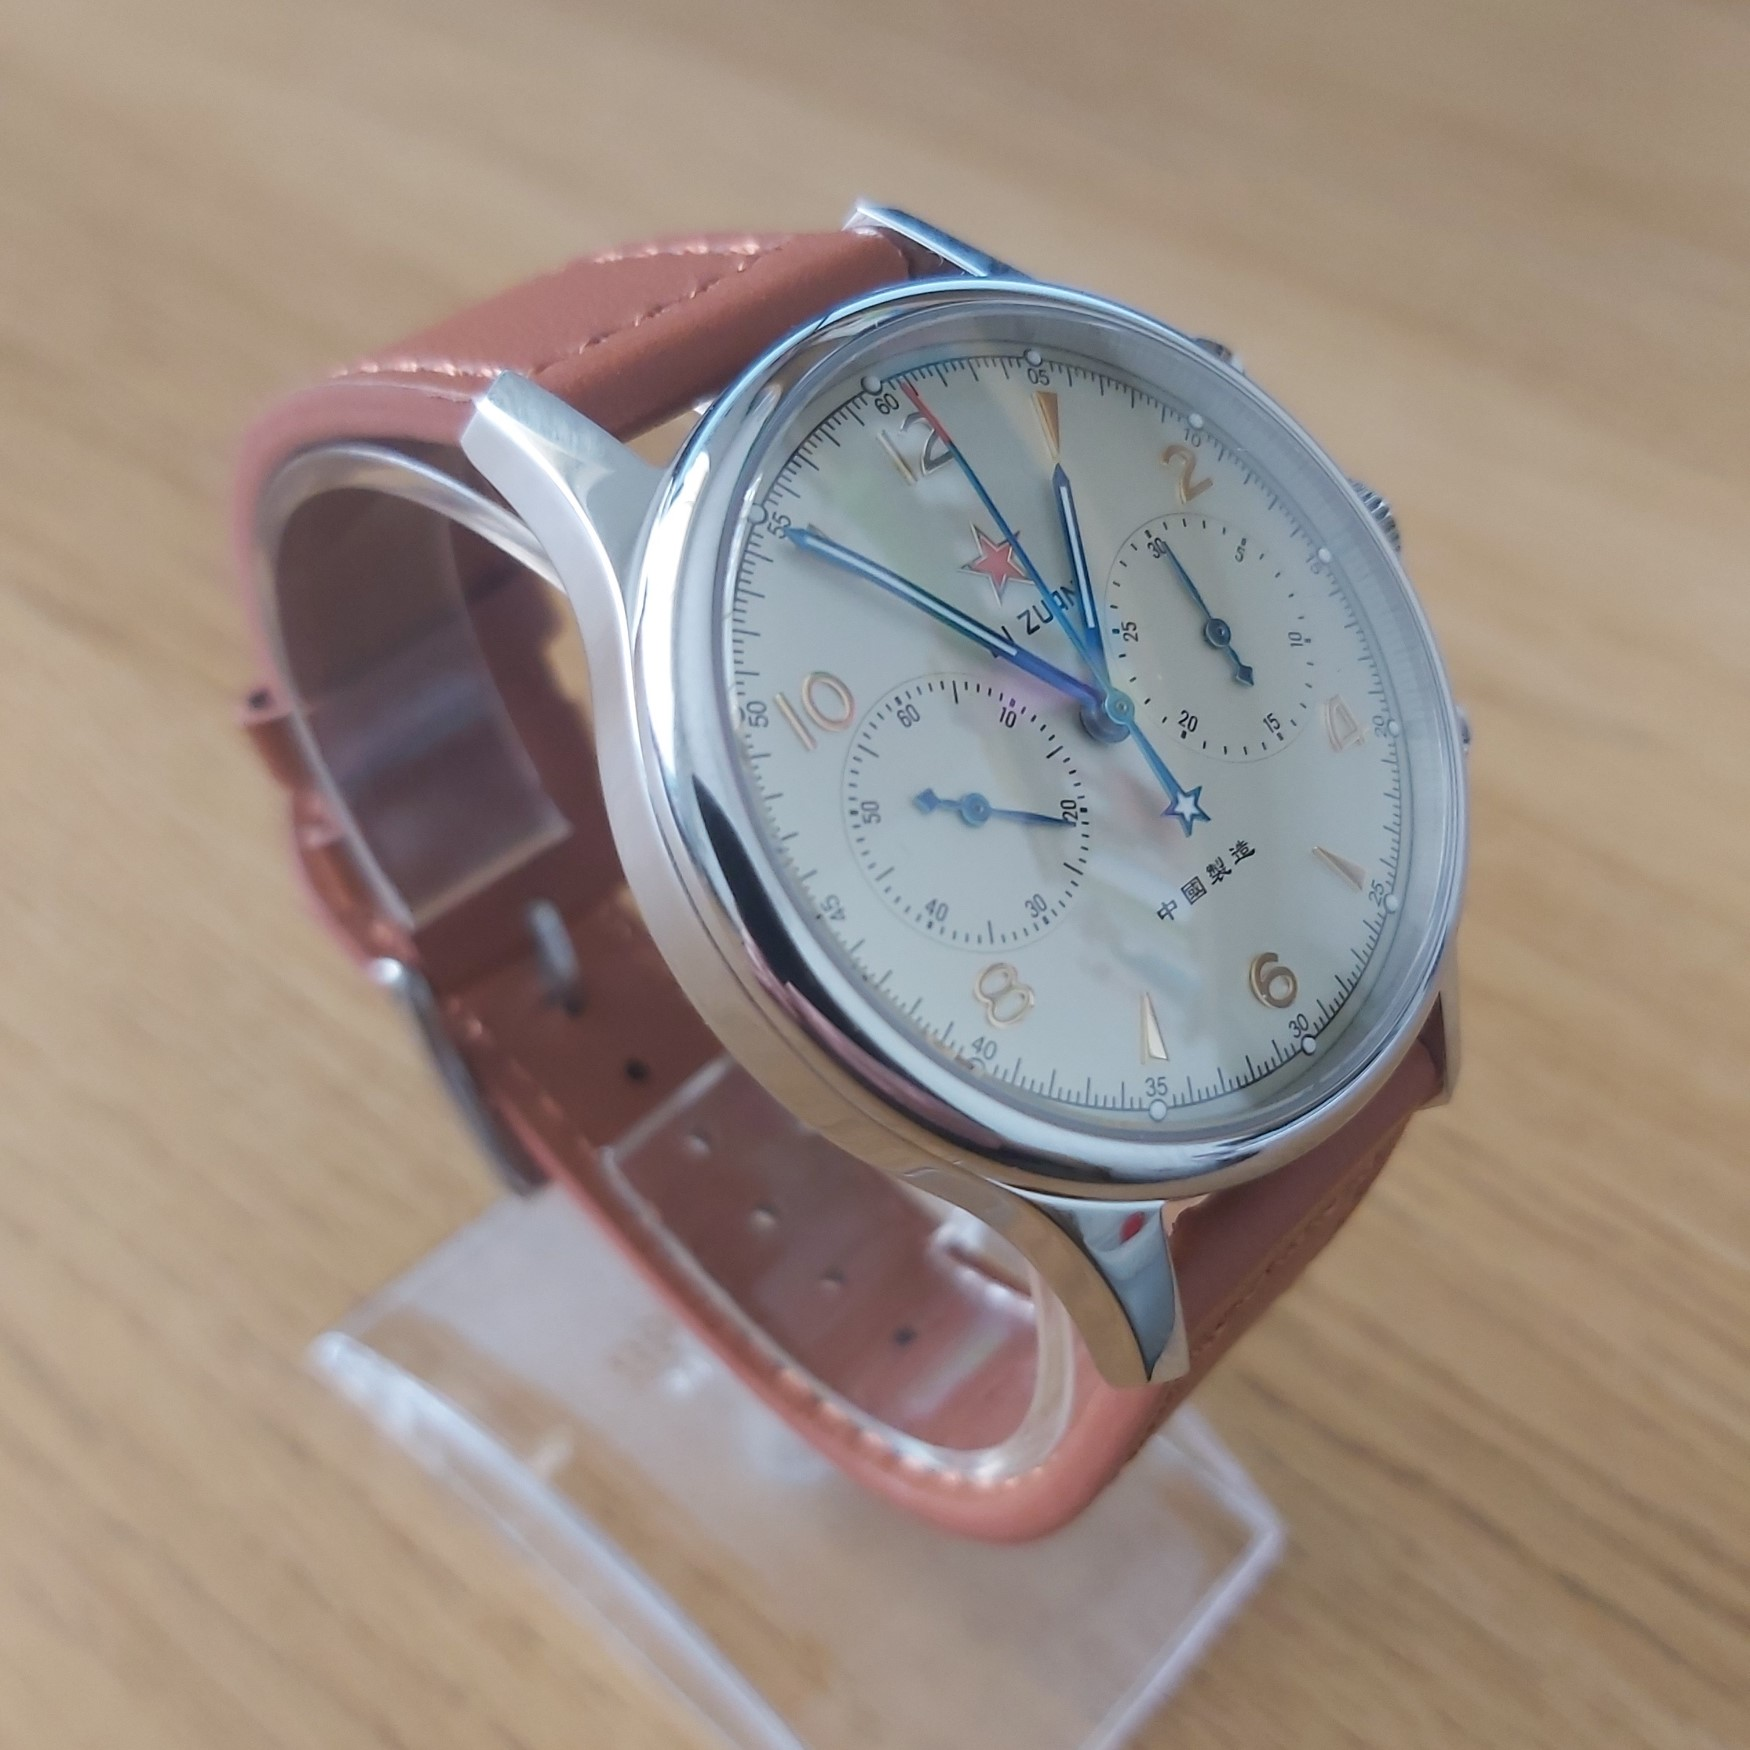 Sugess Seagull 1963 ST1901 Chronograph: LUMED 40mm